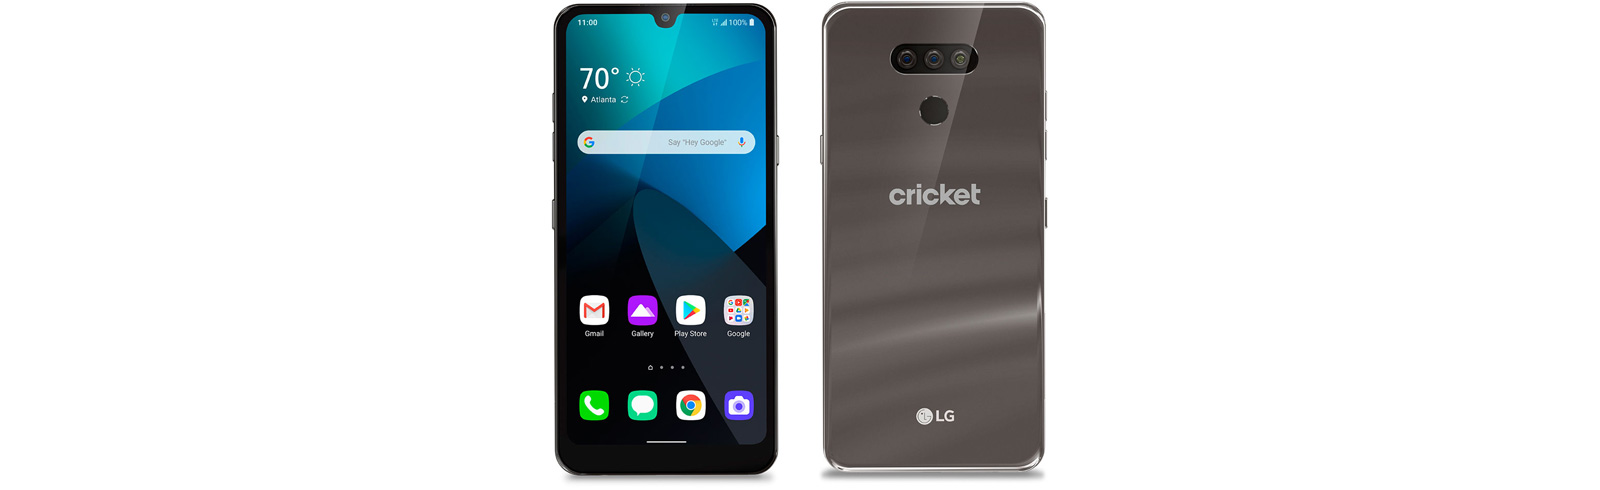 LG Harmony 4 goes on sale in the USA via Cricket Wireless, costs USD 140